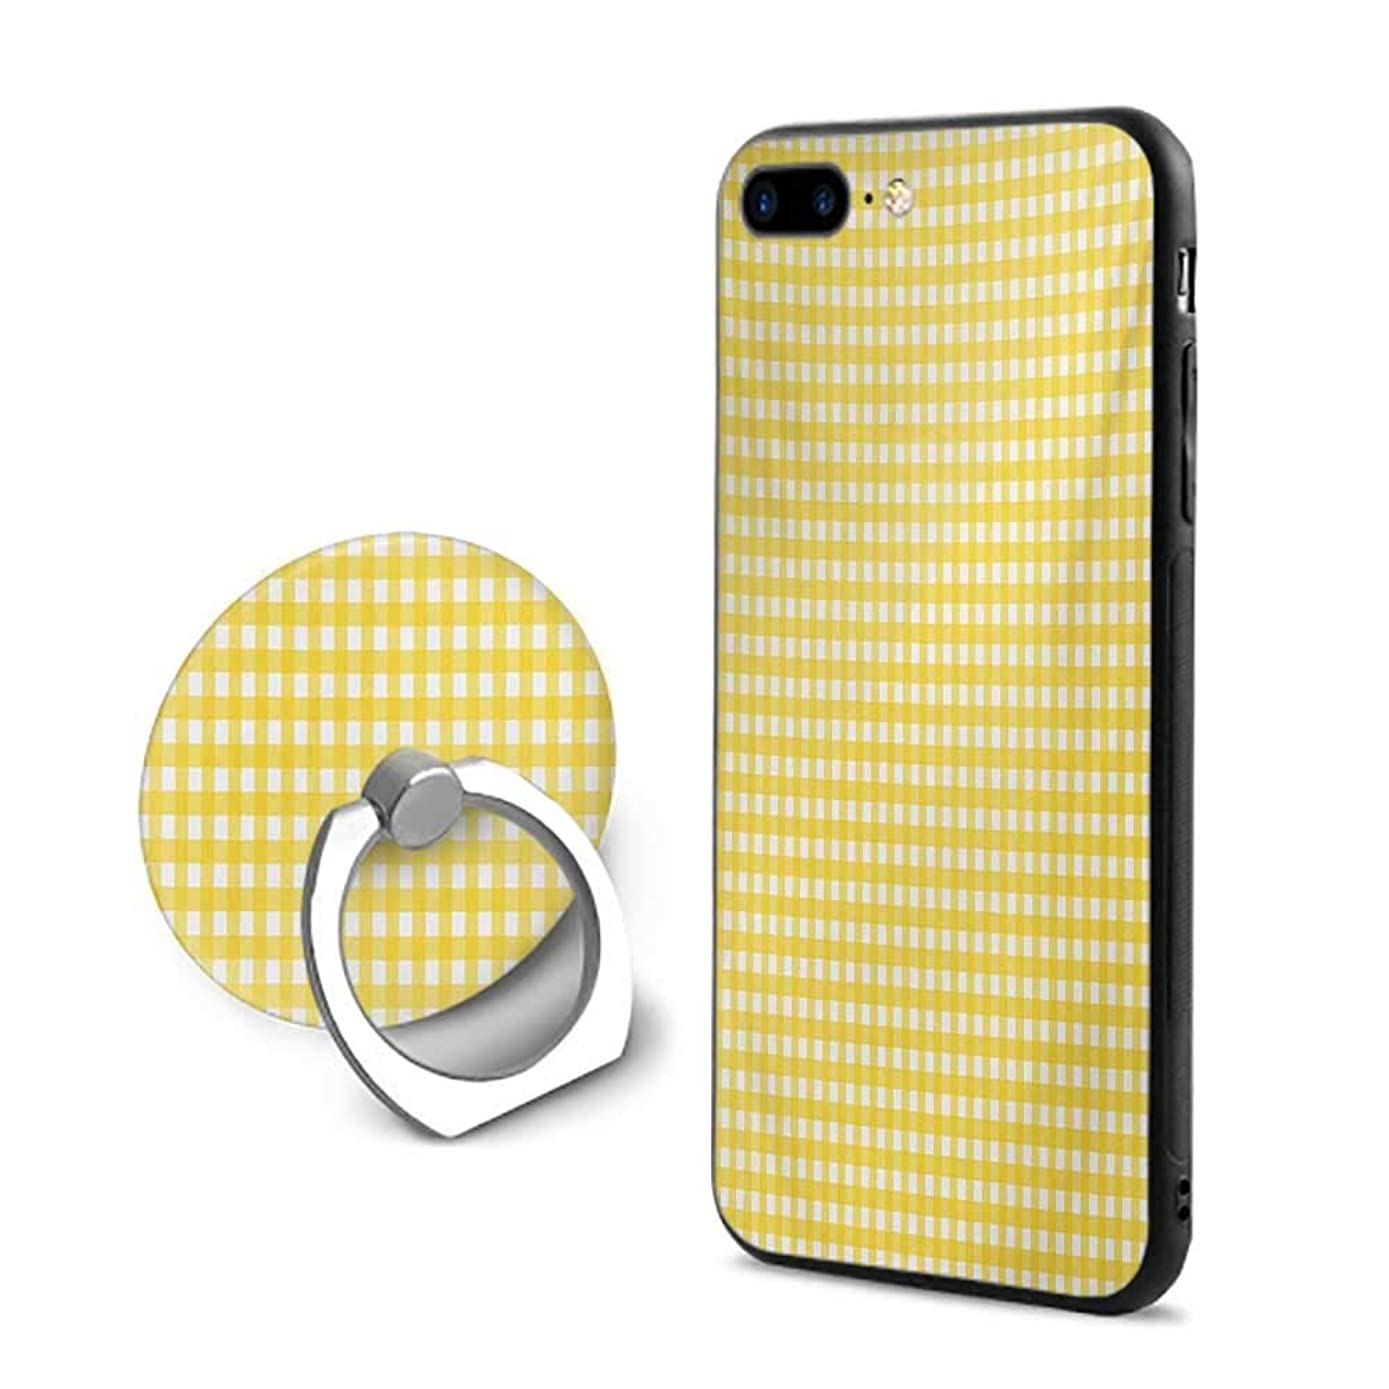 Checkered Tablecloth iPhone 7 Plus/iPhone 8 Plus Cases,Classic English Pattern in Yellow Picnic in Summertime Theme Retro Striped Yellow White,Design Mobile Phone Shell Ring Bracket